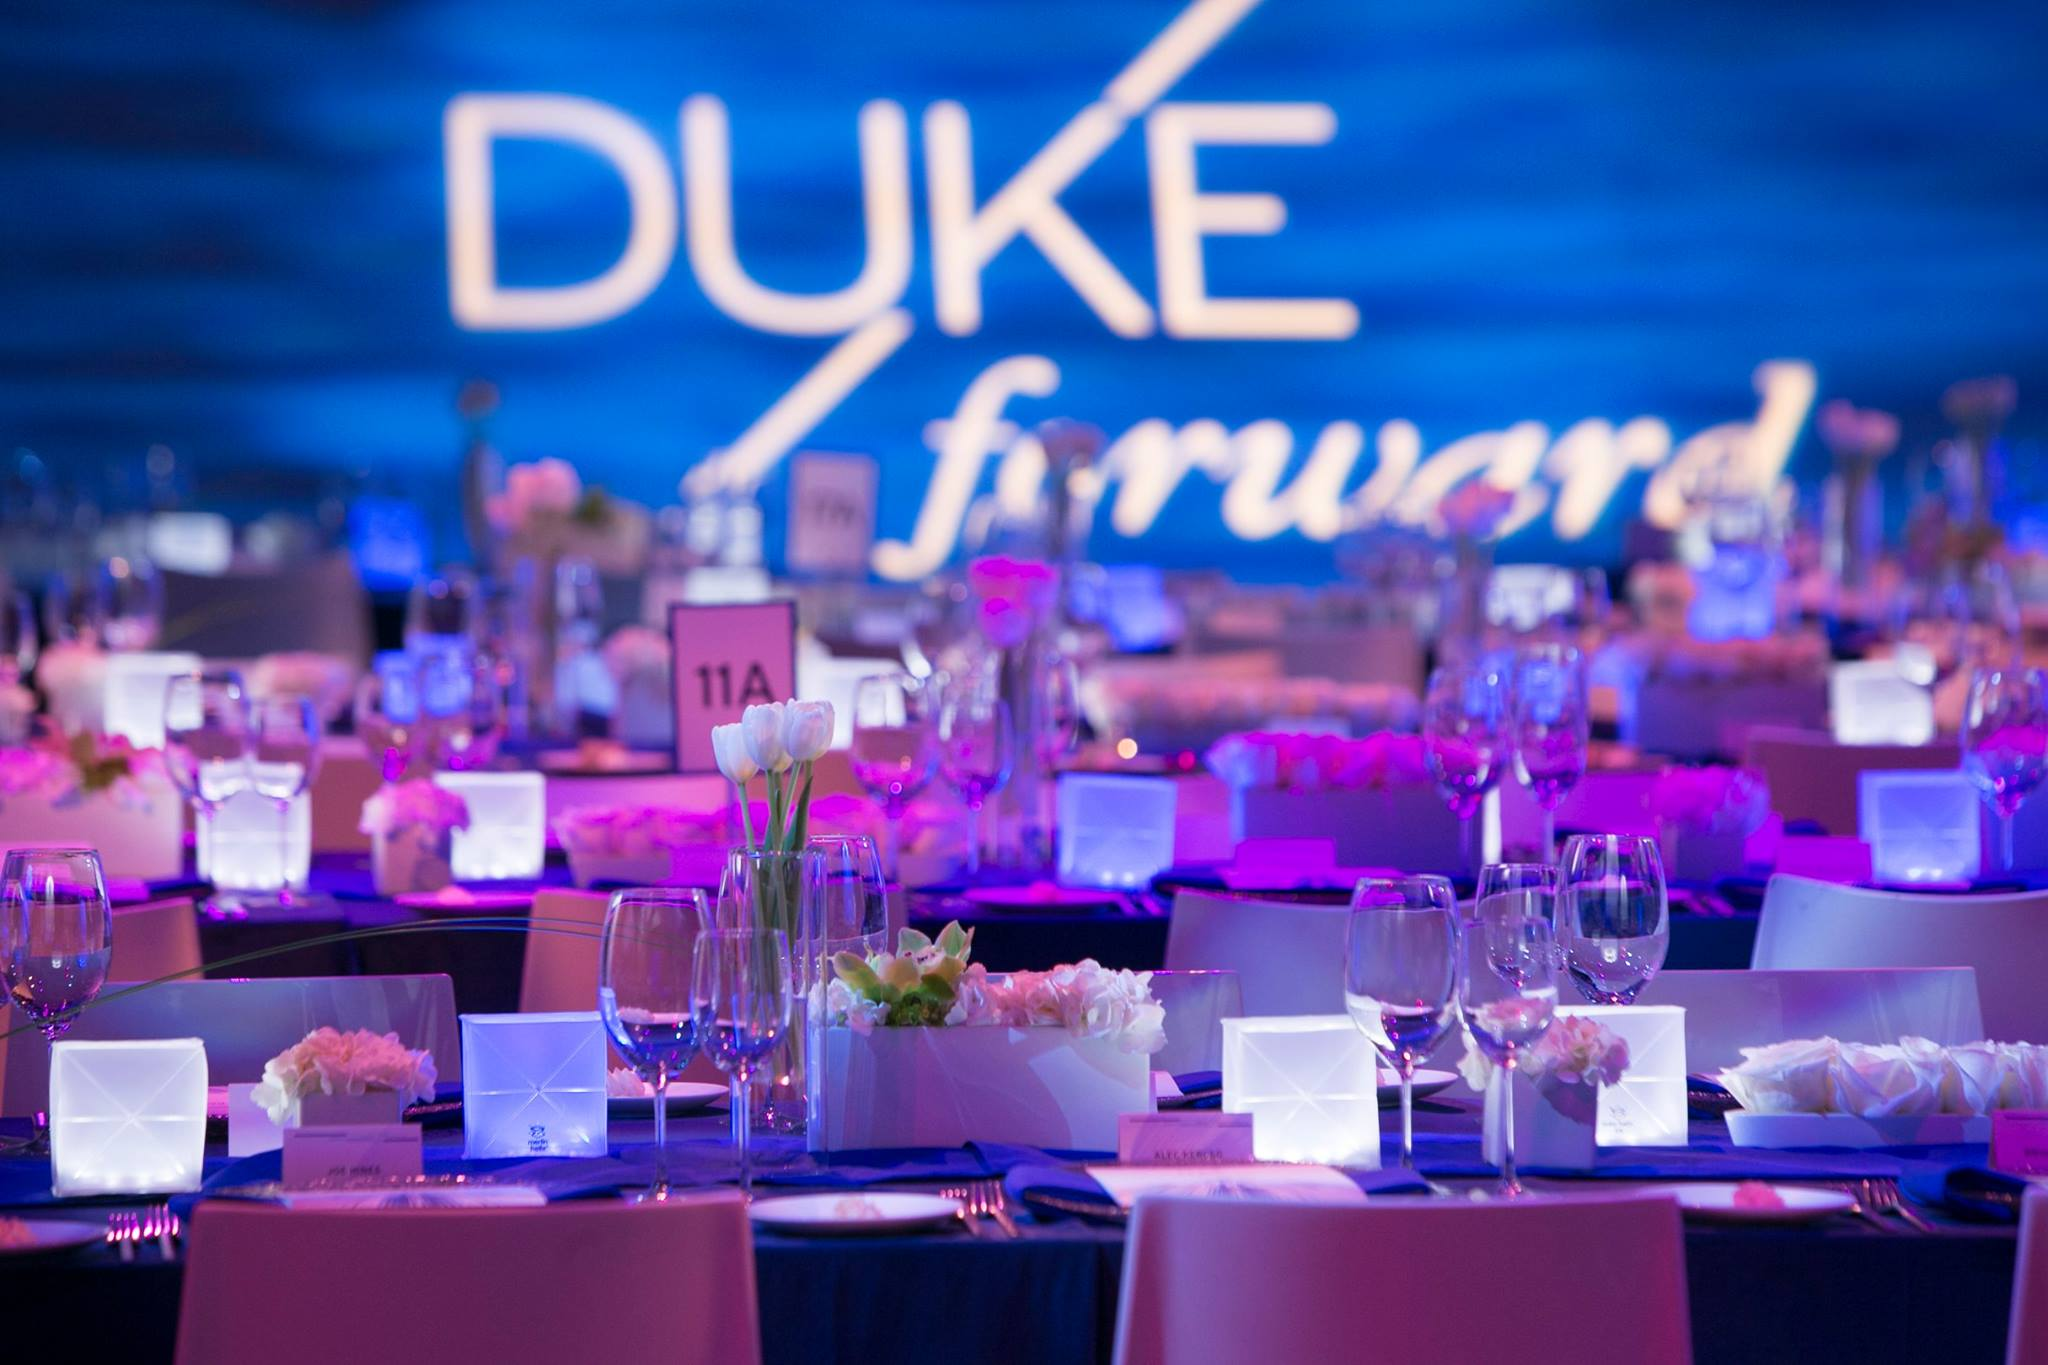 Indigo Envelope - Duke Forward Campaign Celebration Dinners